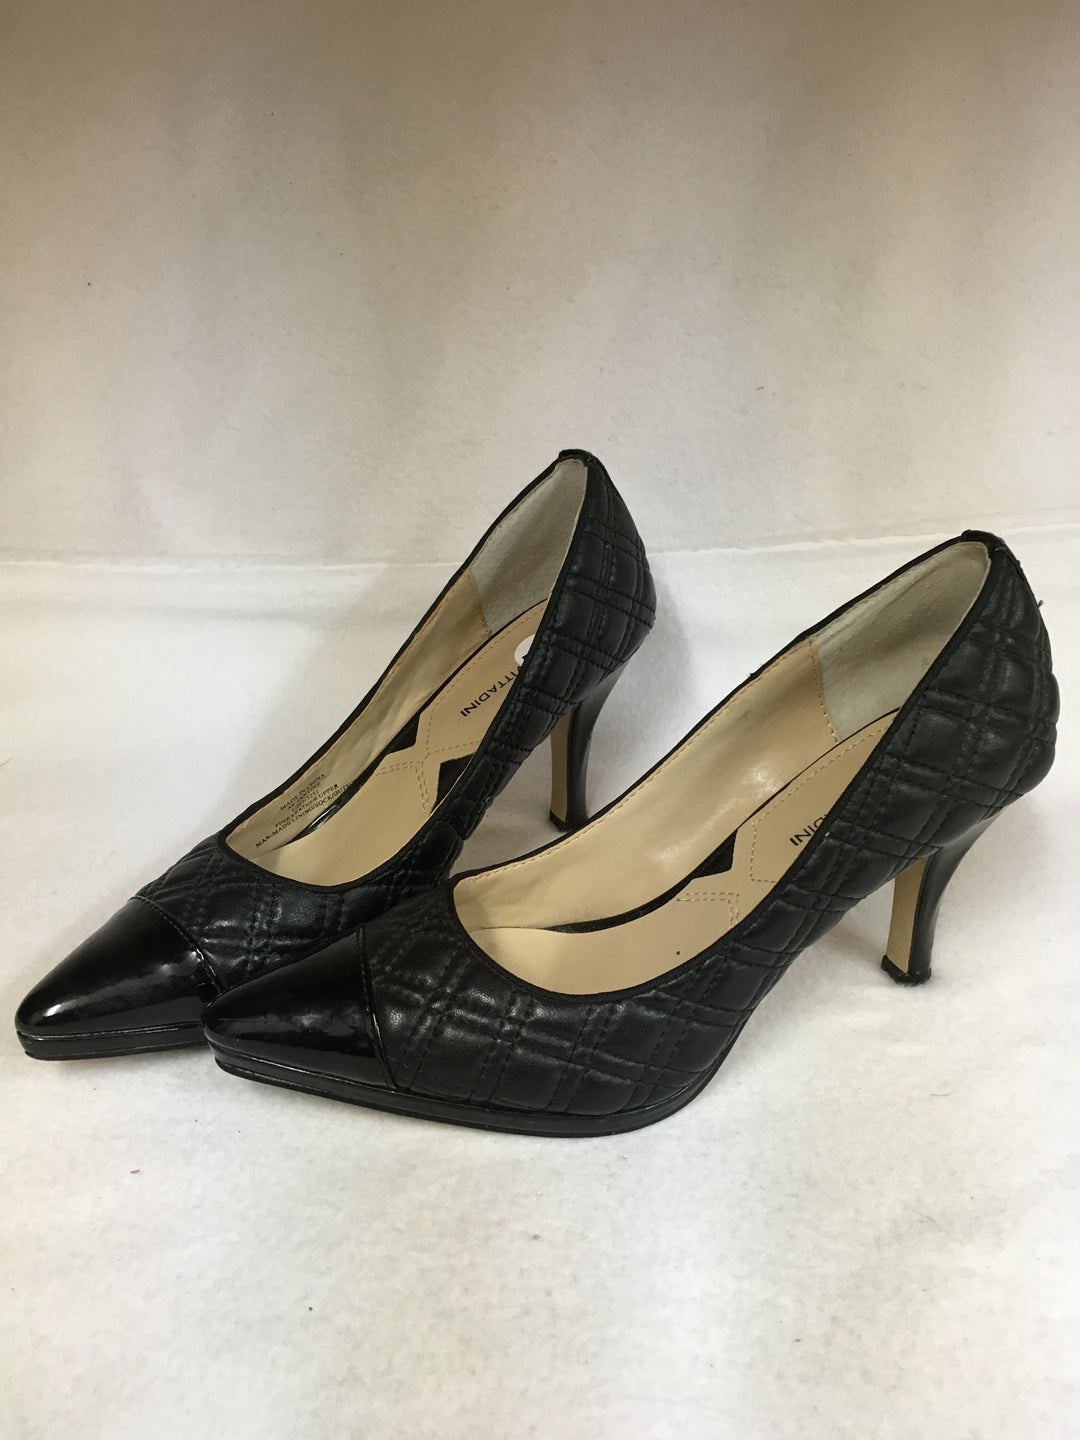 Primary Photo - BRAND: ADRIENNE VITTADINI <BR>STYLE: SHOES HIGH HEEL <BR>COLOR: BLACK <BR>SIZE: 7 <BR>OTHER INFO: AS IS <BR>SKU: 240-24052-51165